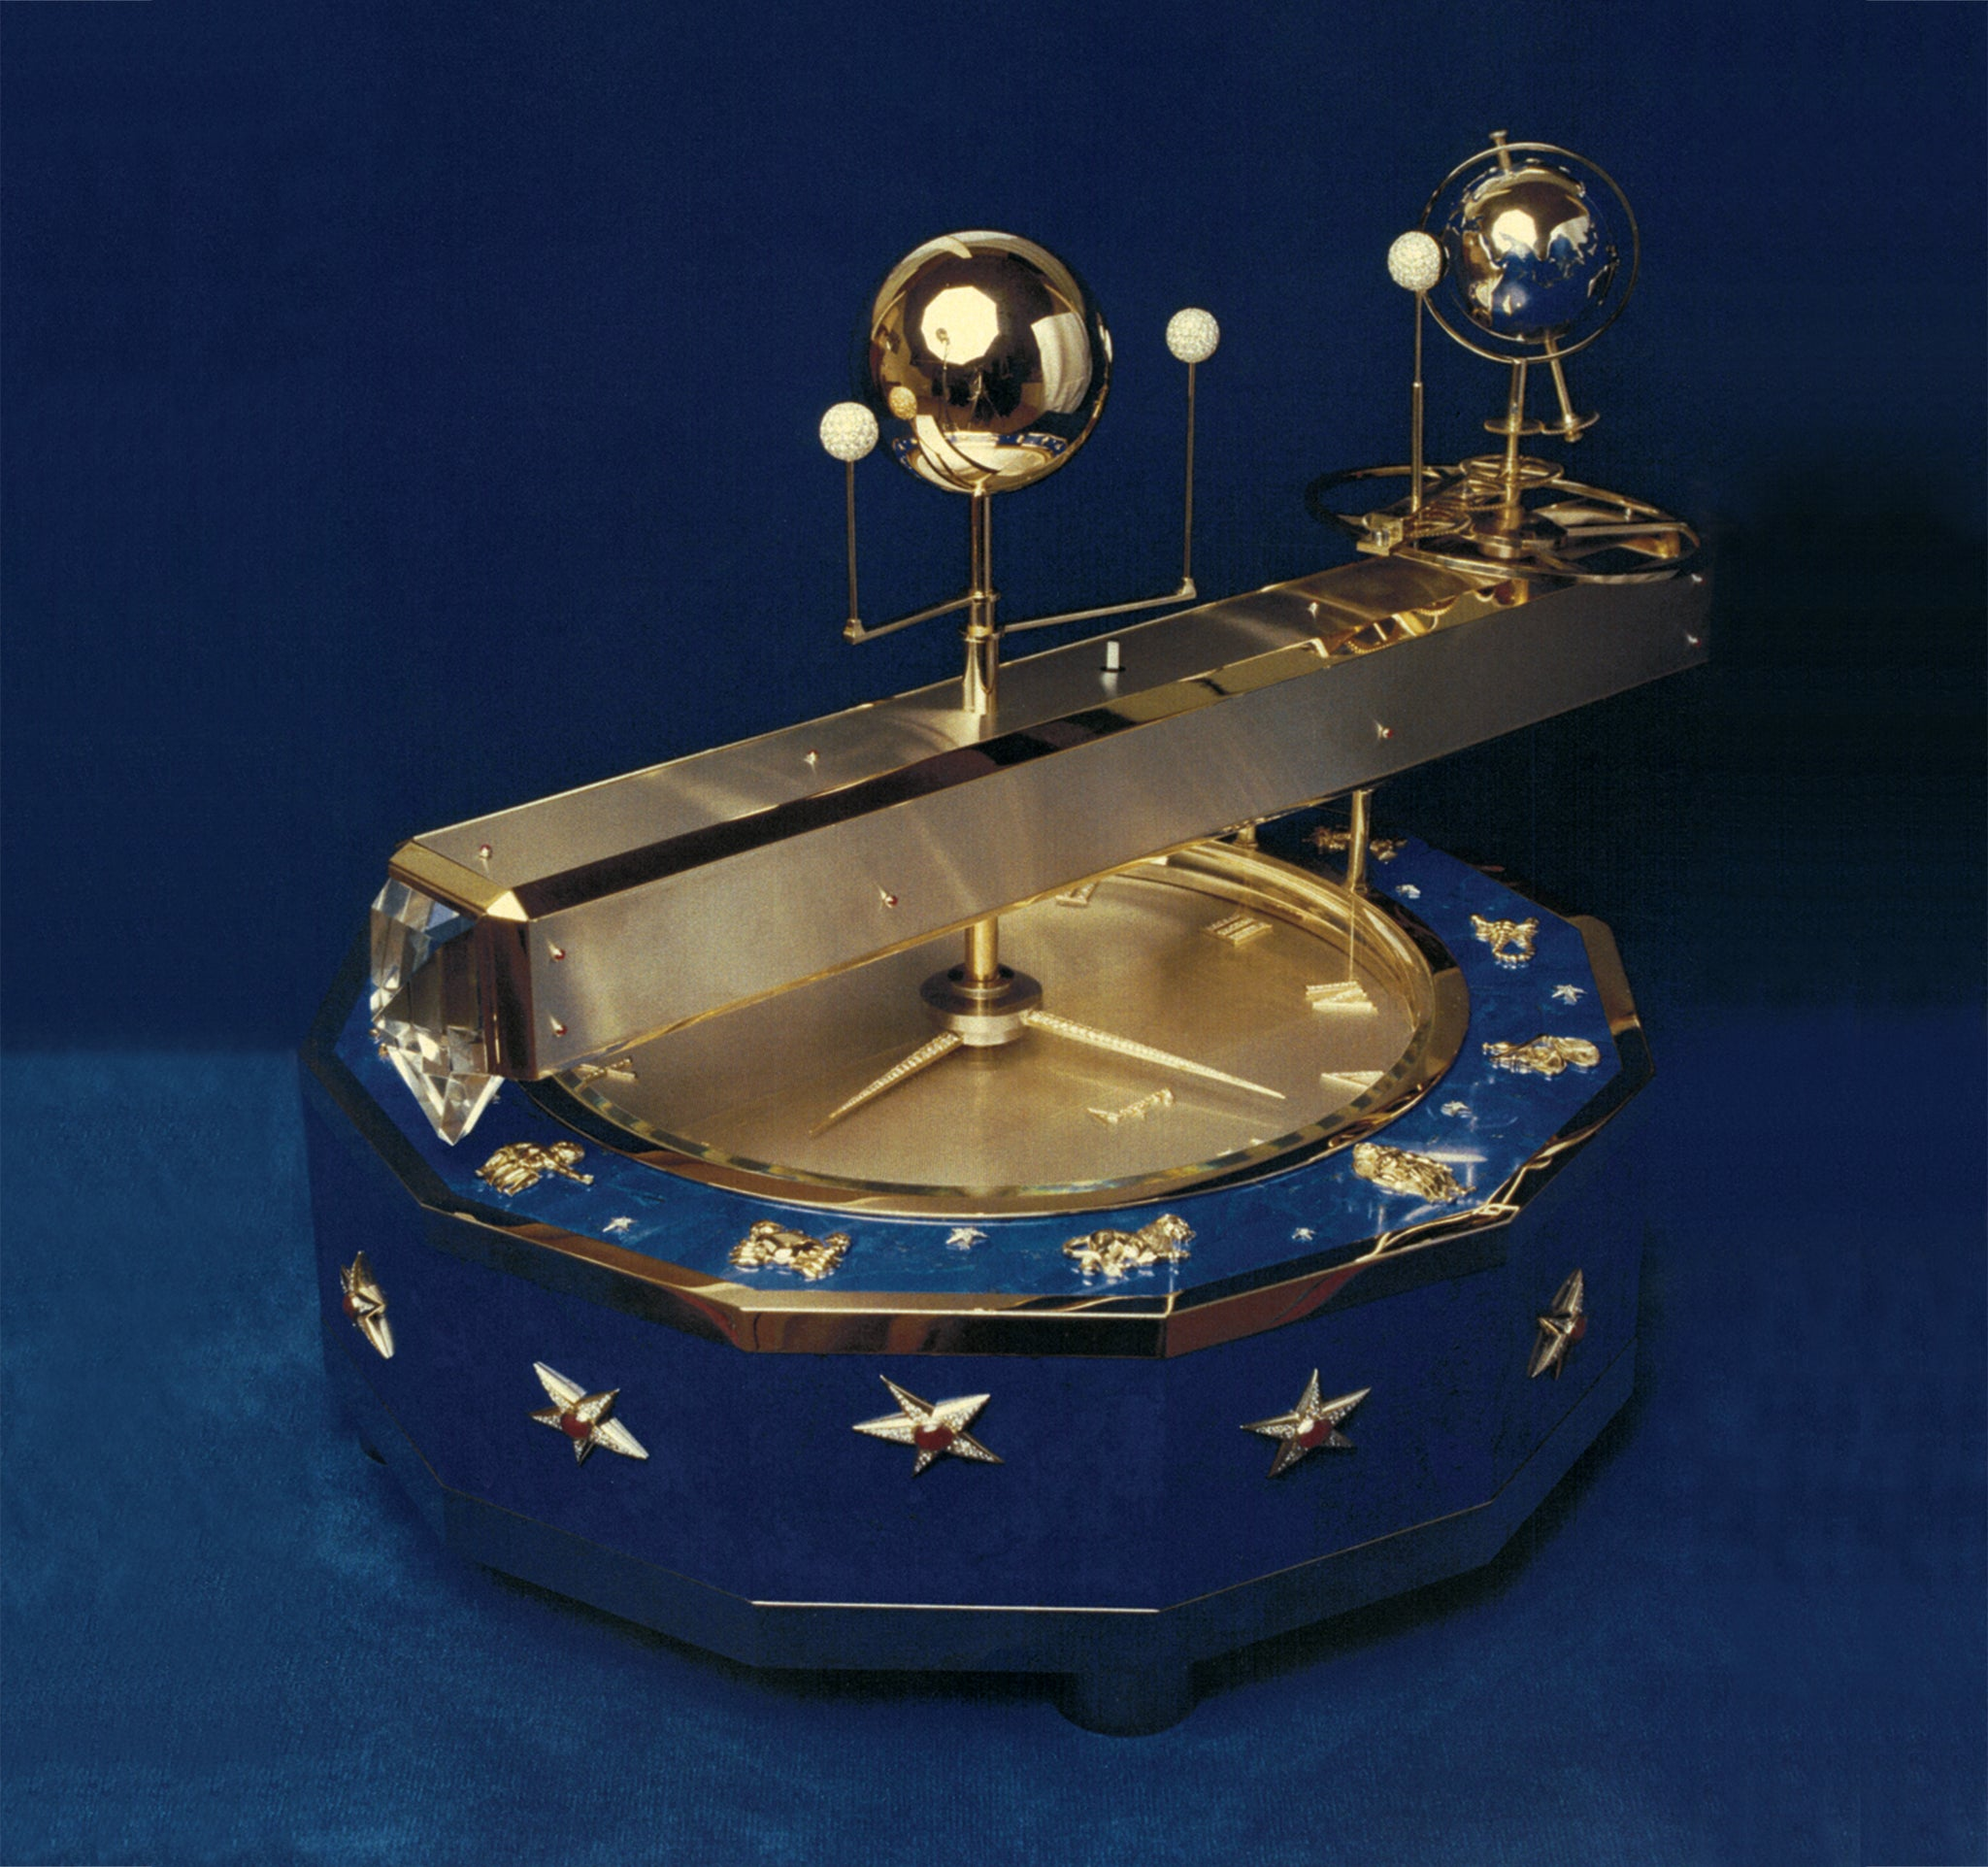 The Planetarium that Jounre helped to build for P.G Brun and Asprey, completed in 1979